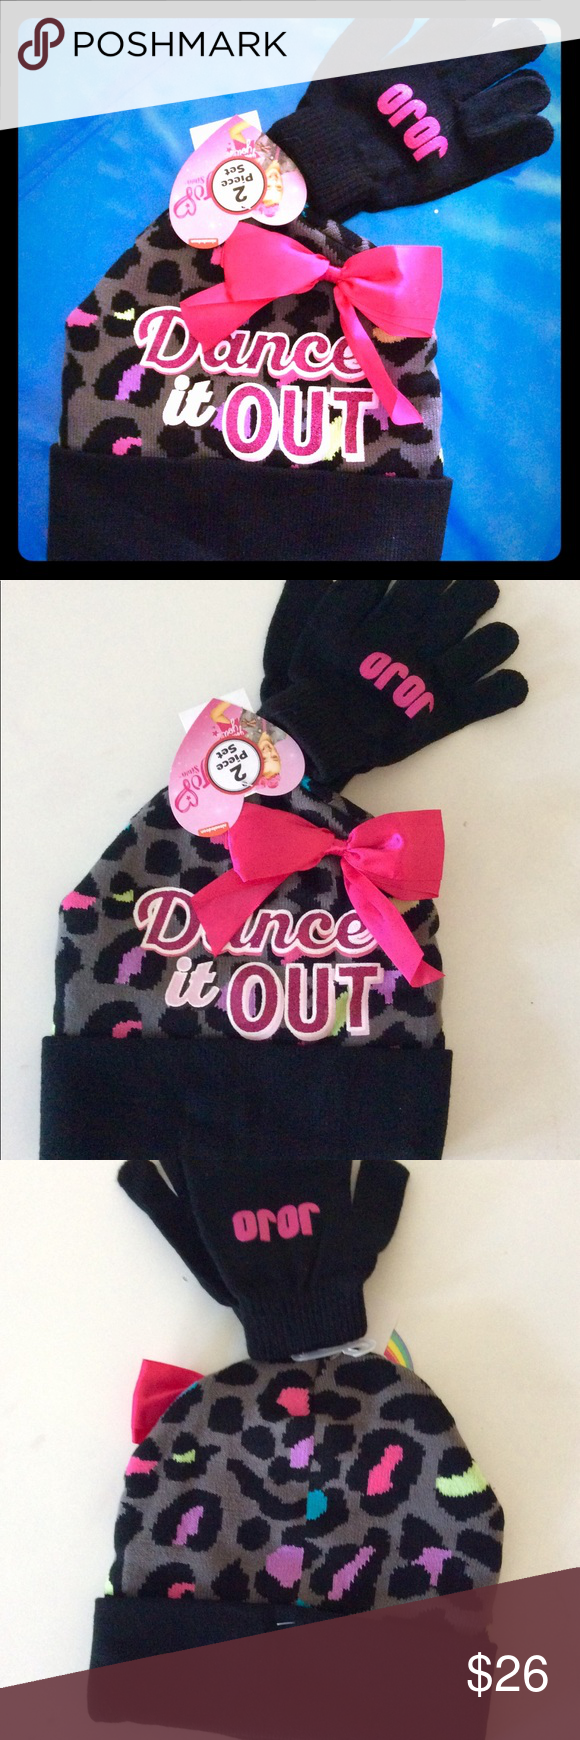 Jojo Siwa winter Gloves and beanie hat gift set New with tags licensed by  Nickelodeon Has an actual Jojo bow on beanie So popular. Only a few left!  Bundle ... 400c24aa0789